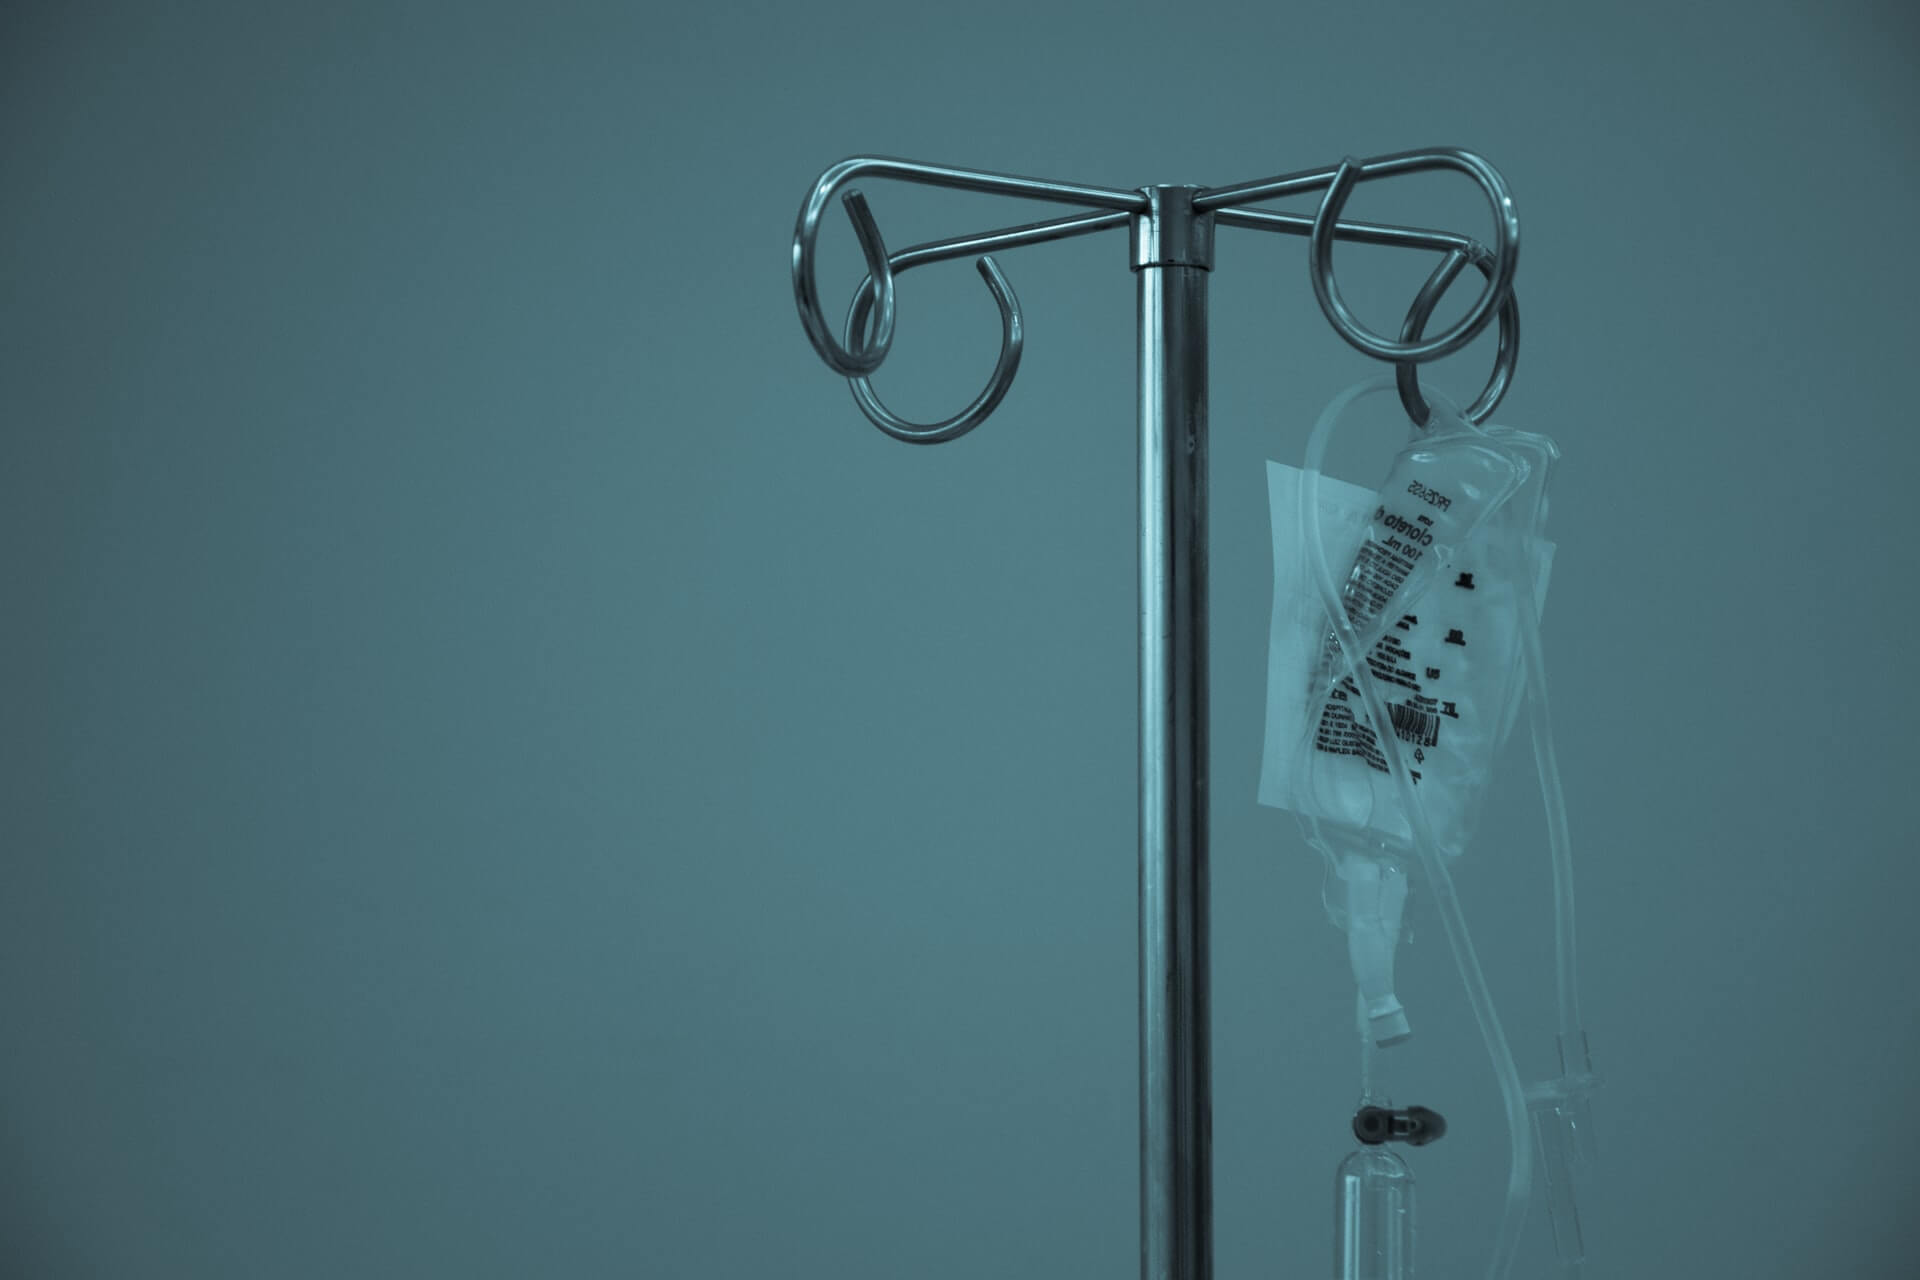 Dextrose hanging on a stainless steel IV stand